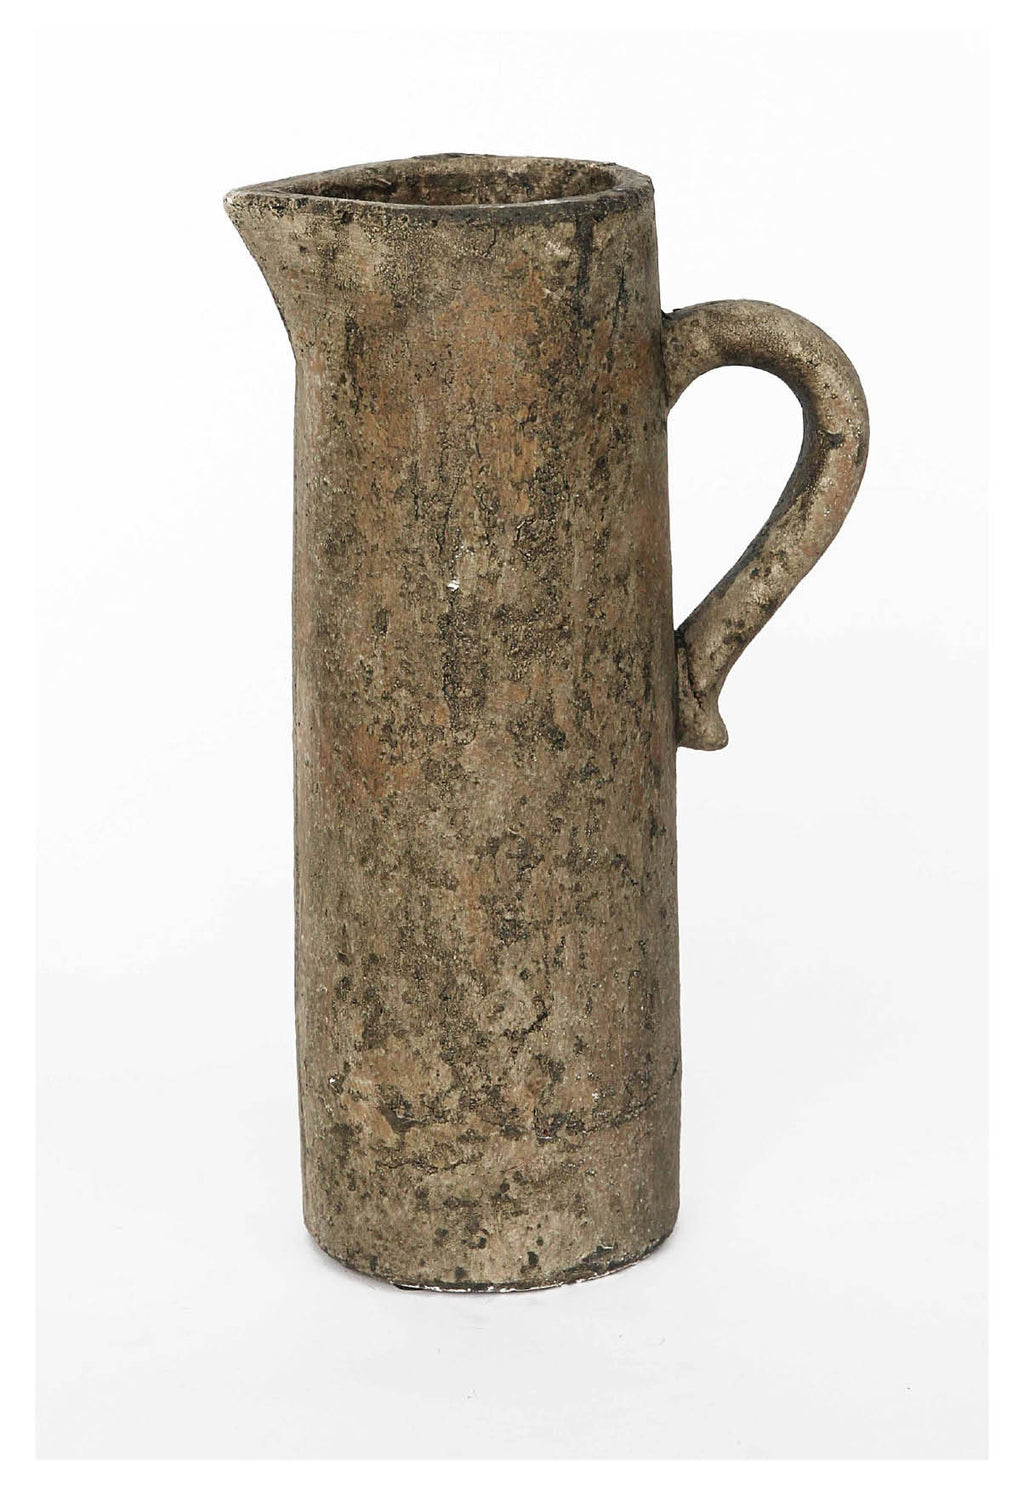 Tall Rustic Ceramic Pitcher